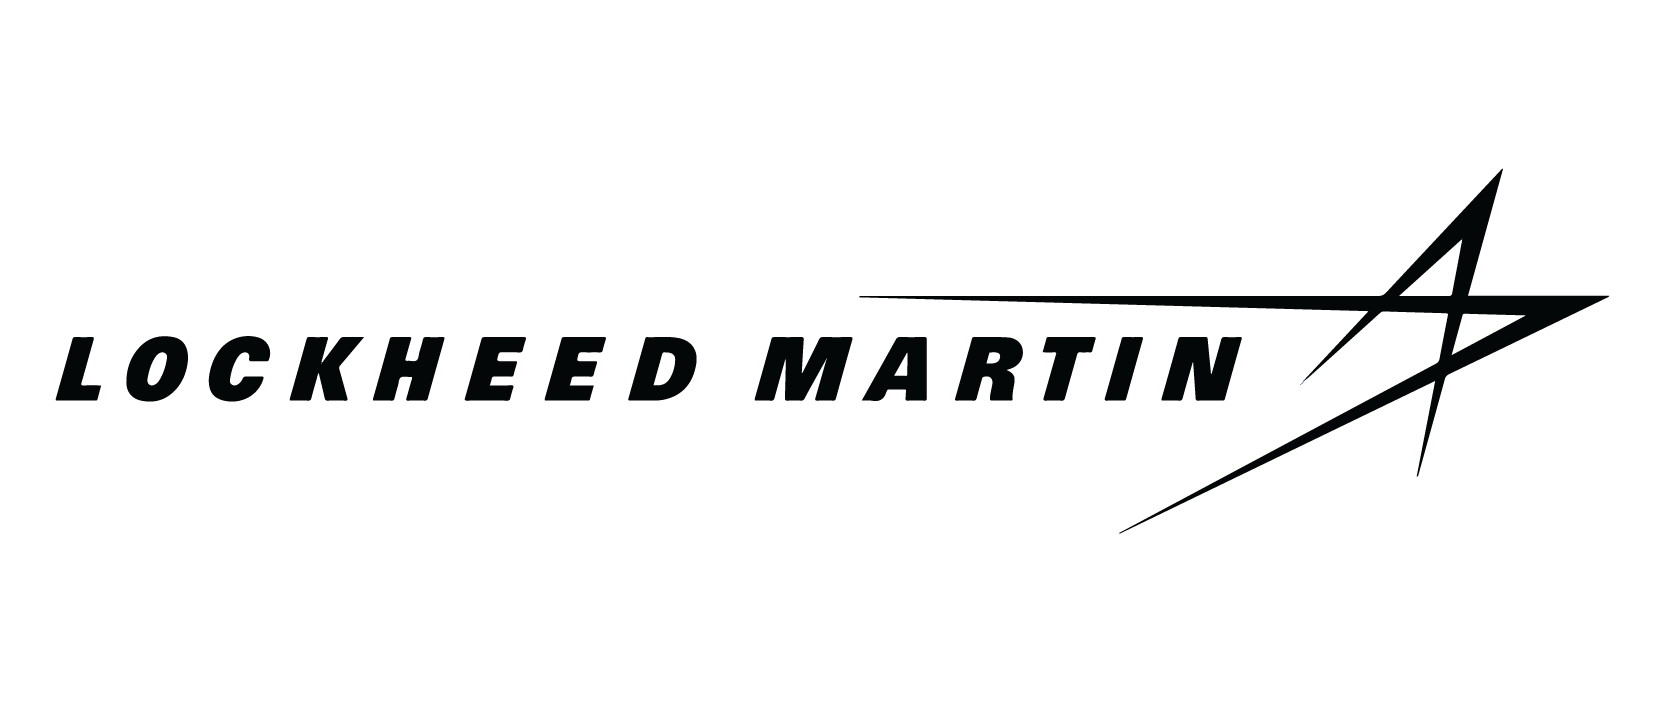 Trusted by lockheed martin